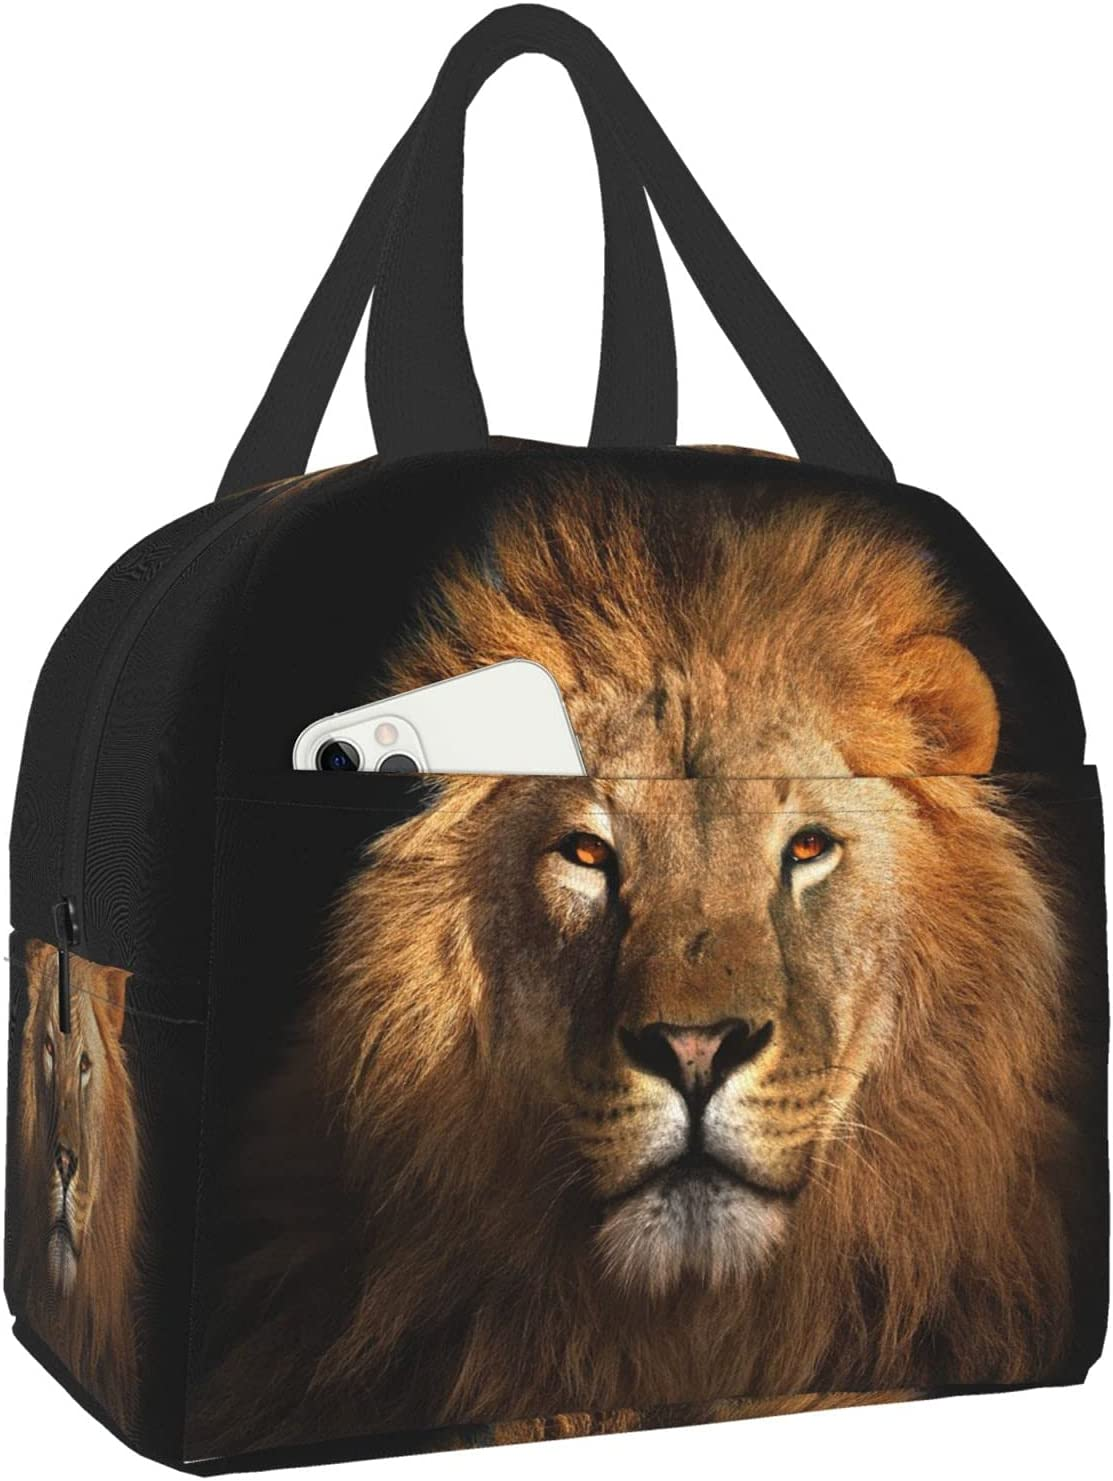 Niukom Lion King Black unisex OFFicial shop Kids Lunch Insulated For Bo Bag Box